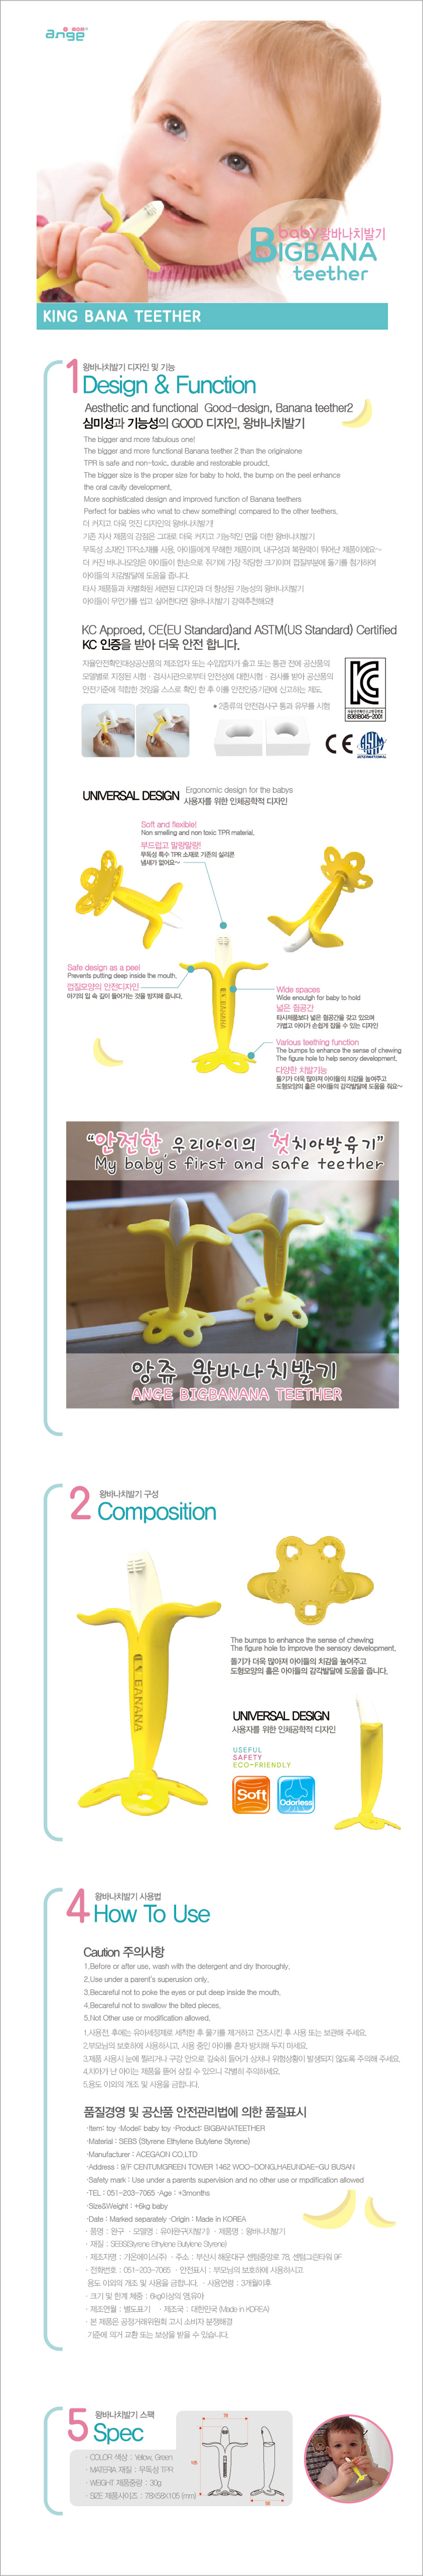 Ange banana teether